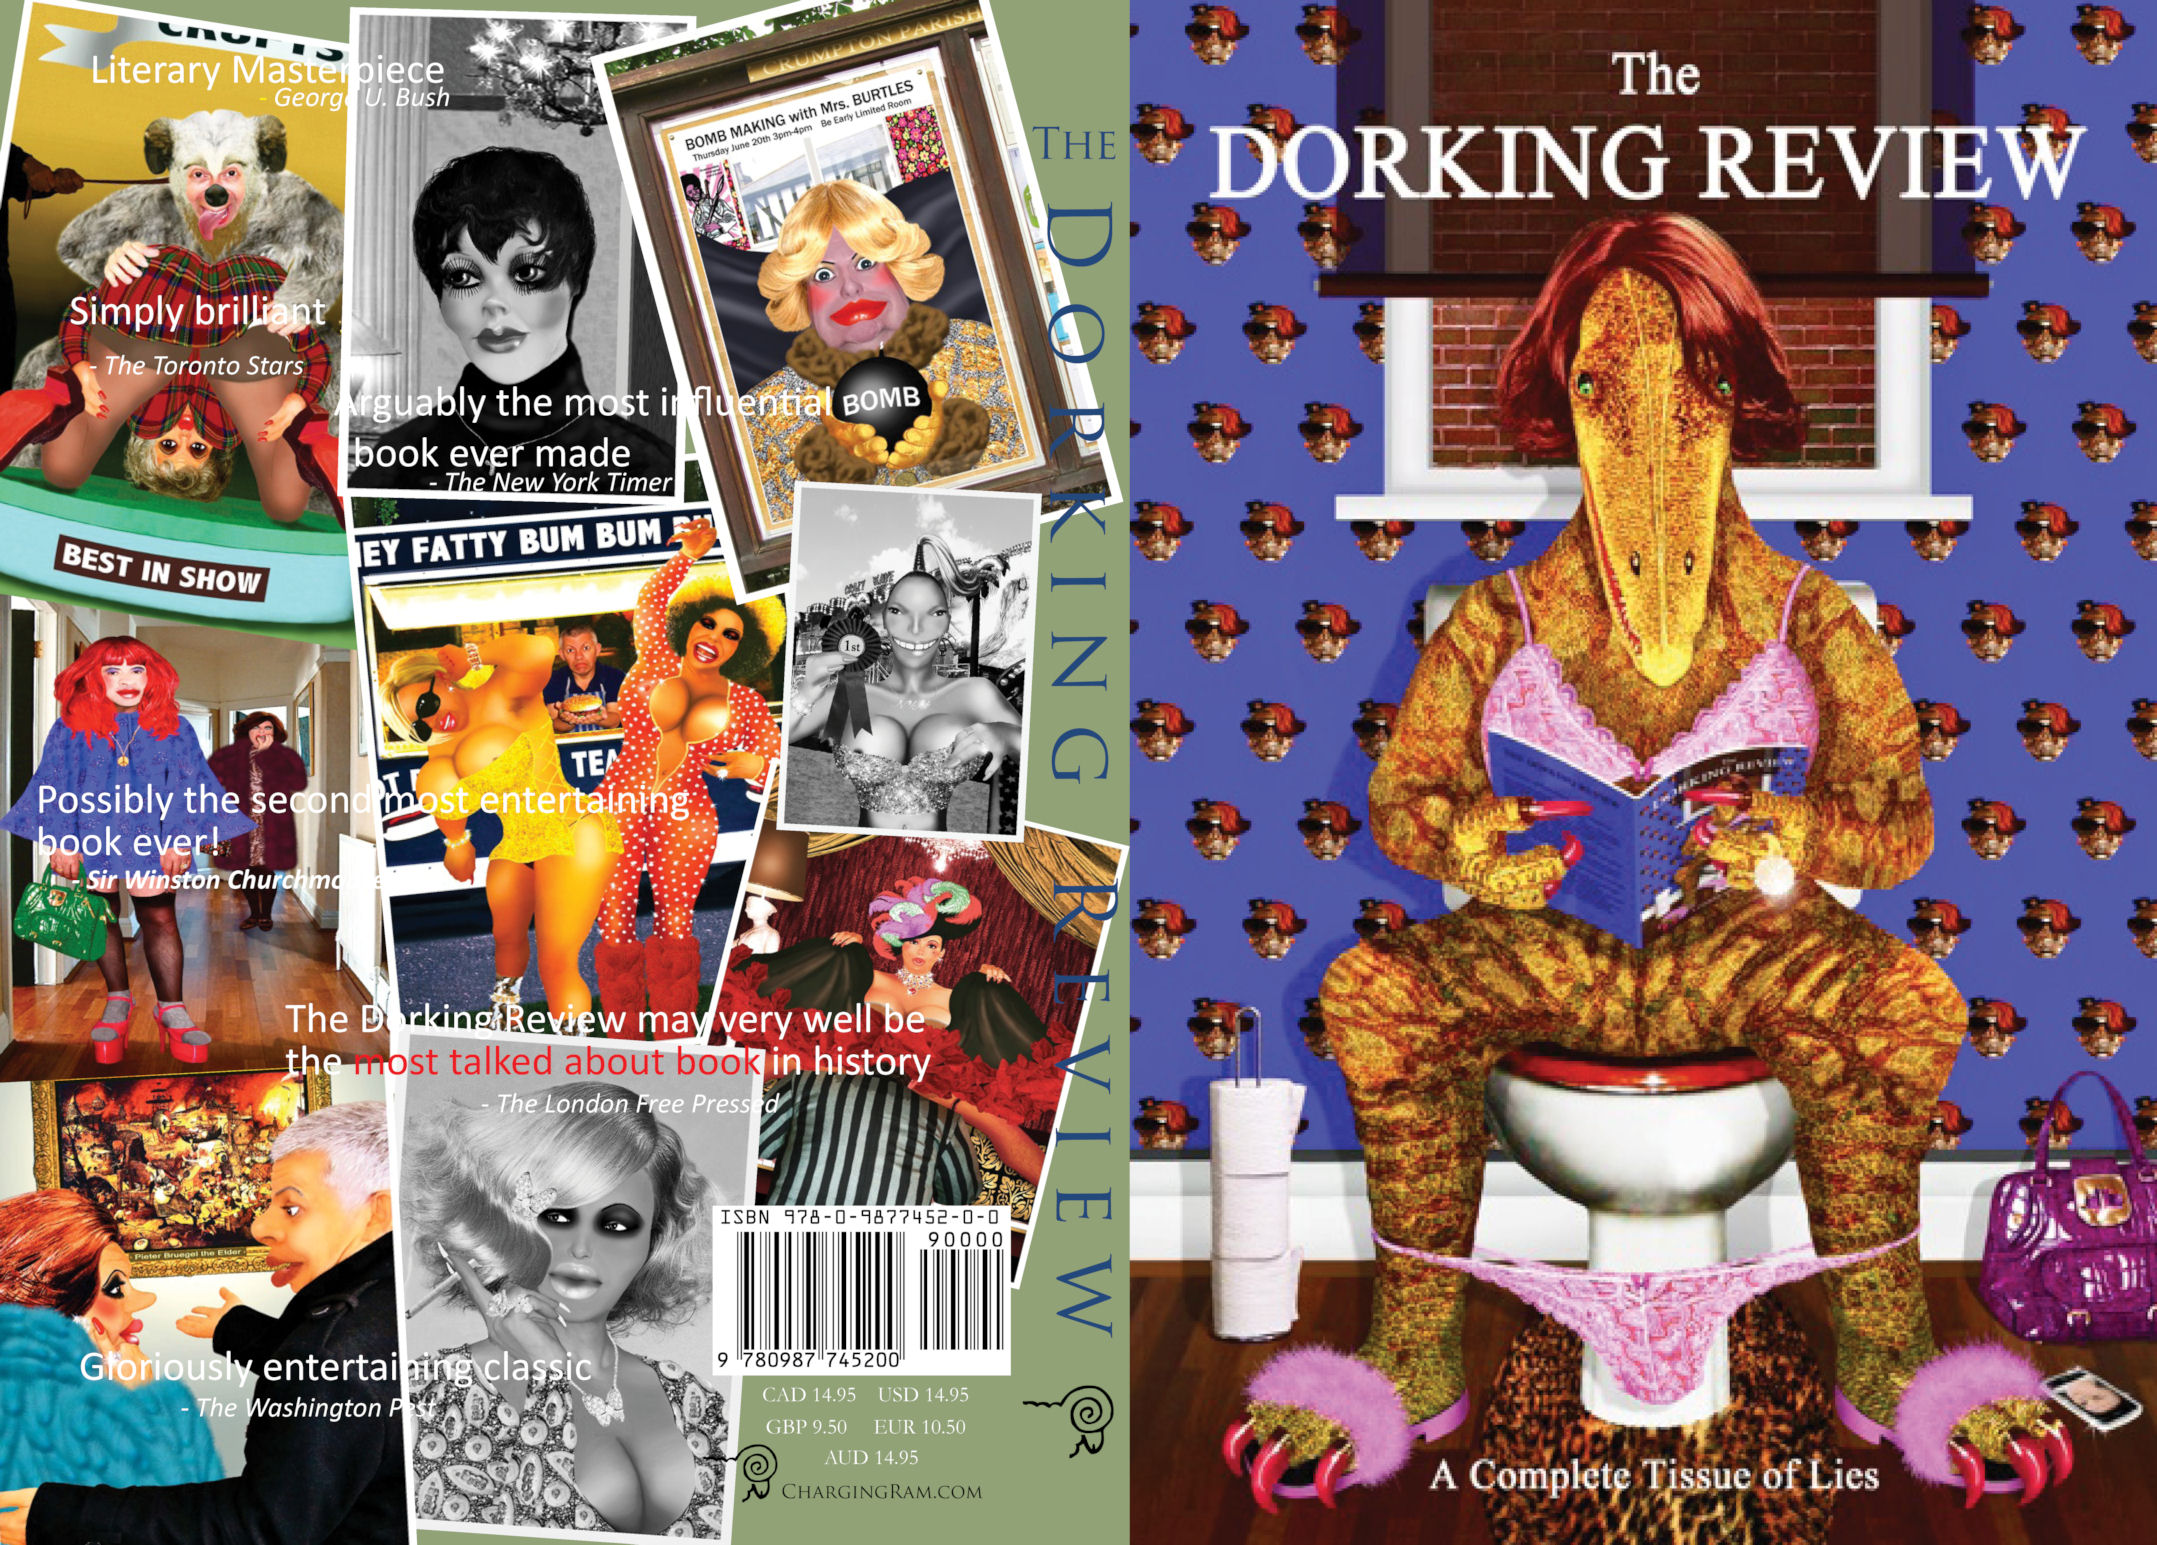 The Dorking Review: Sept. 11, 2011